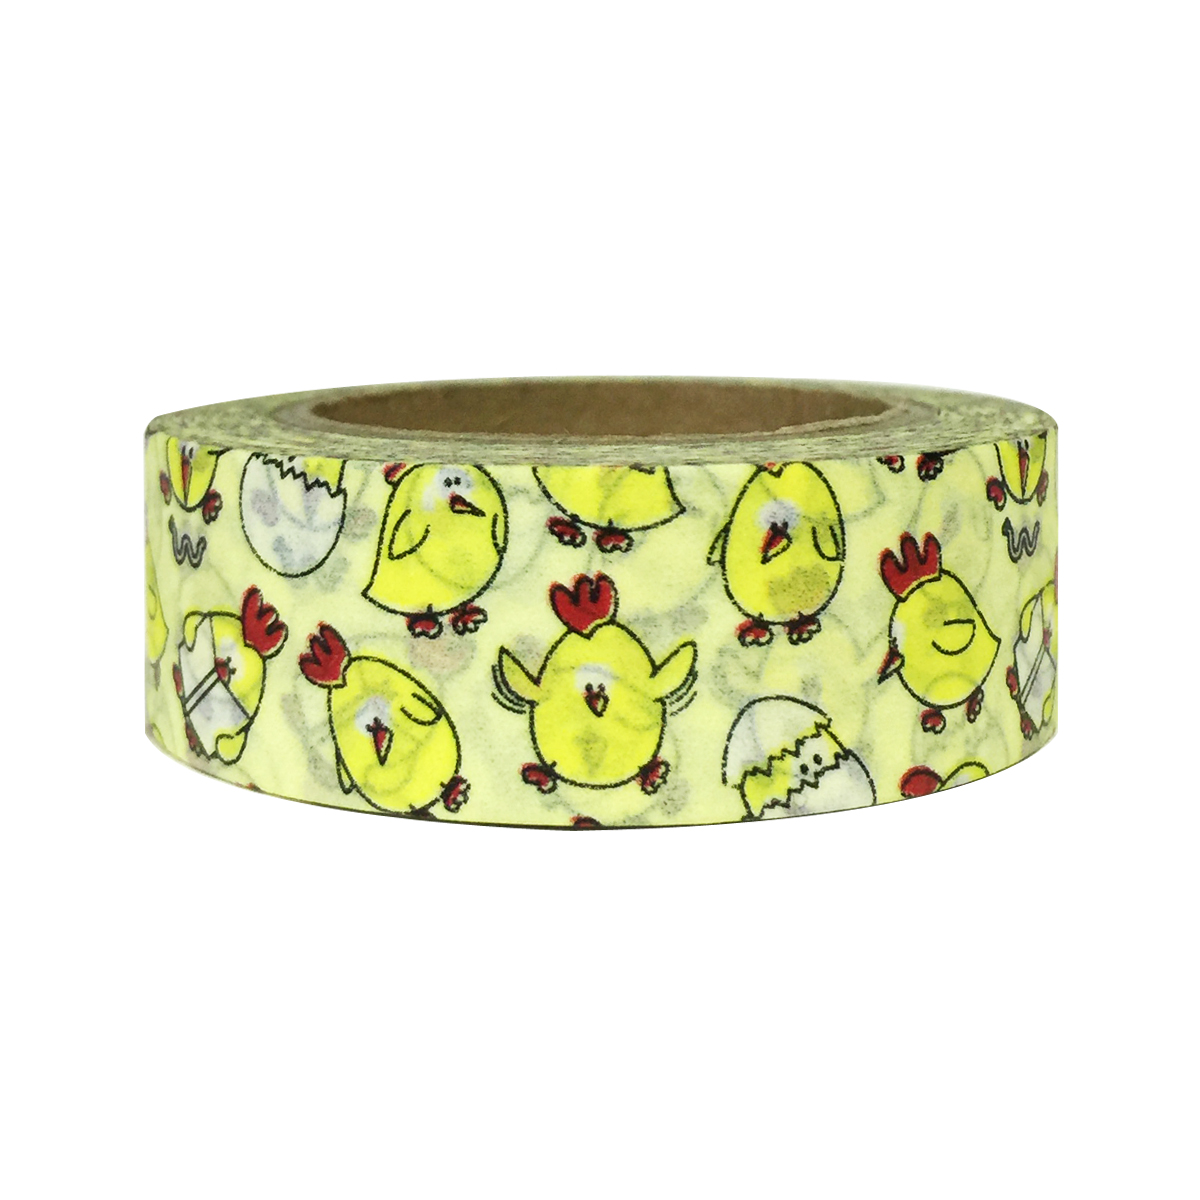 Wrapables® Colorful Patterns Washi Masking Tape, Chicken and Egg